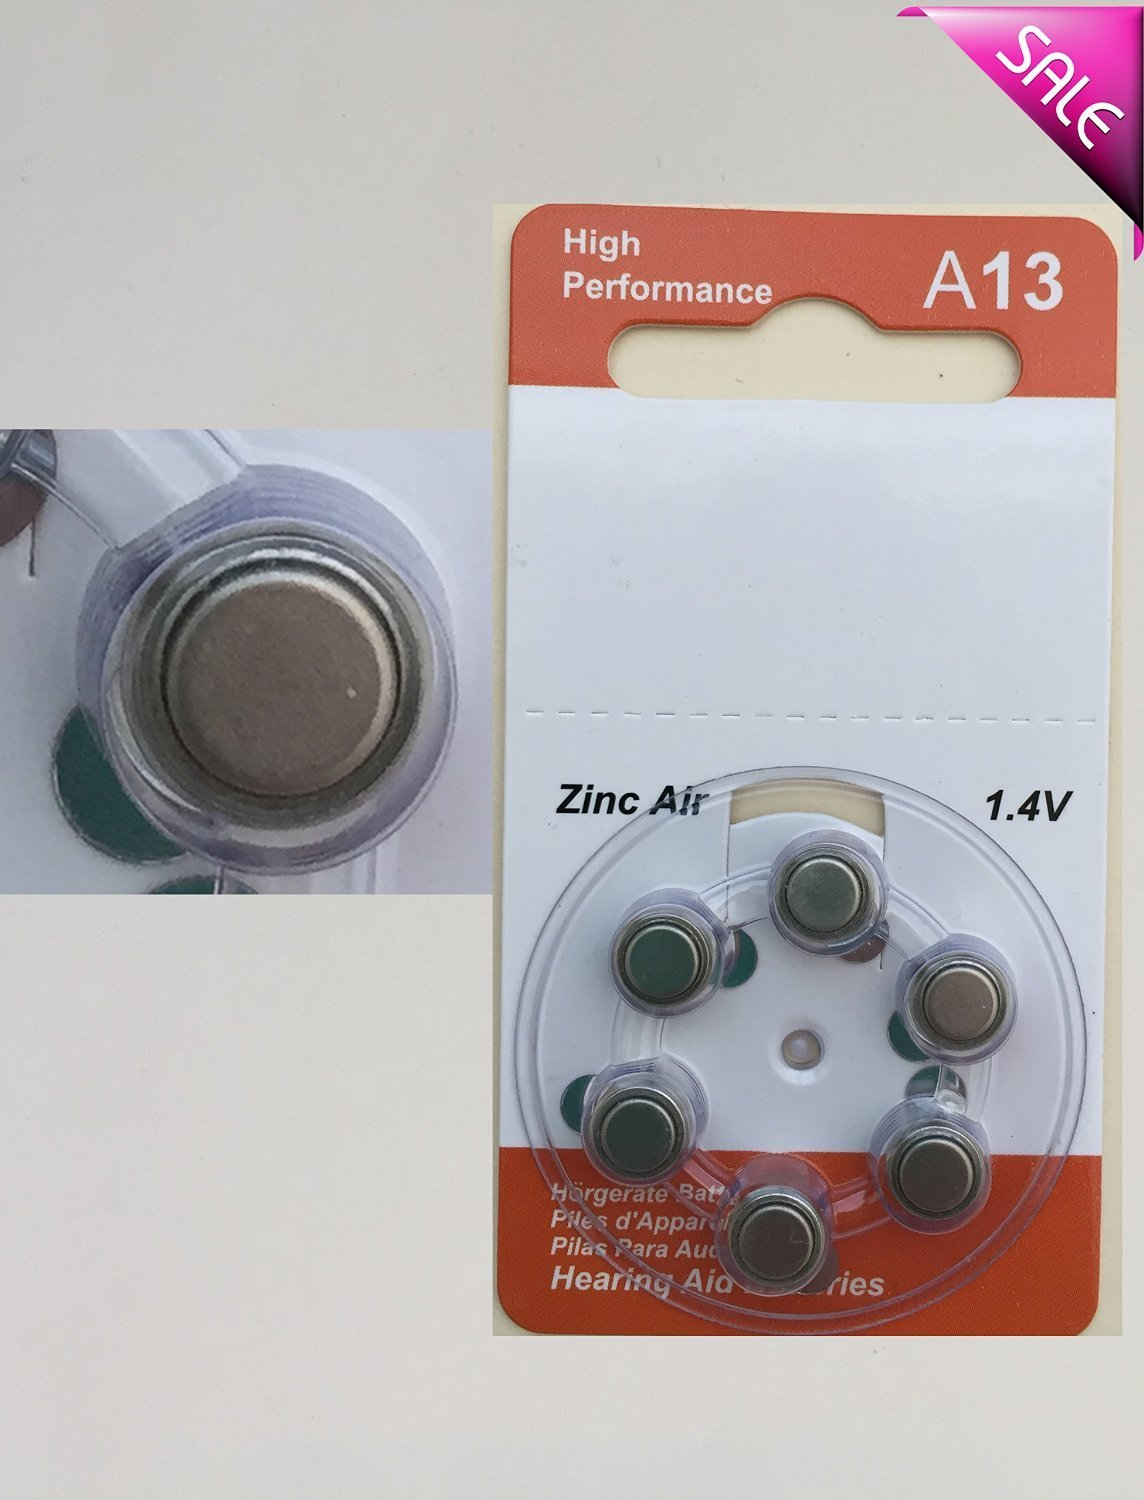 6 Size 13 A13 13 13A 1.4V Zinc-Air Hearing Aid RSS Card Alkaline battery US Fast Shipping